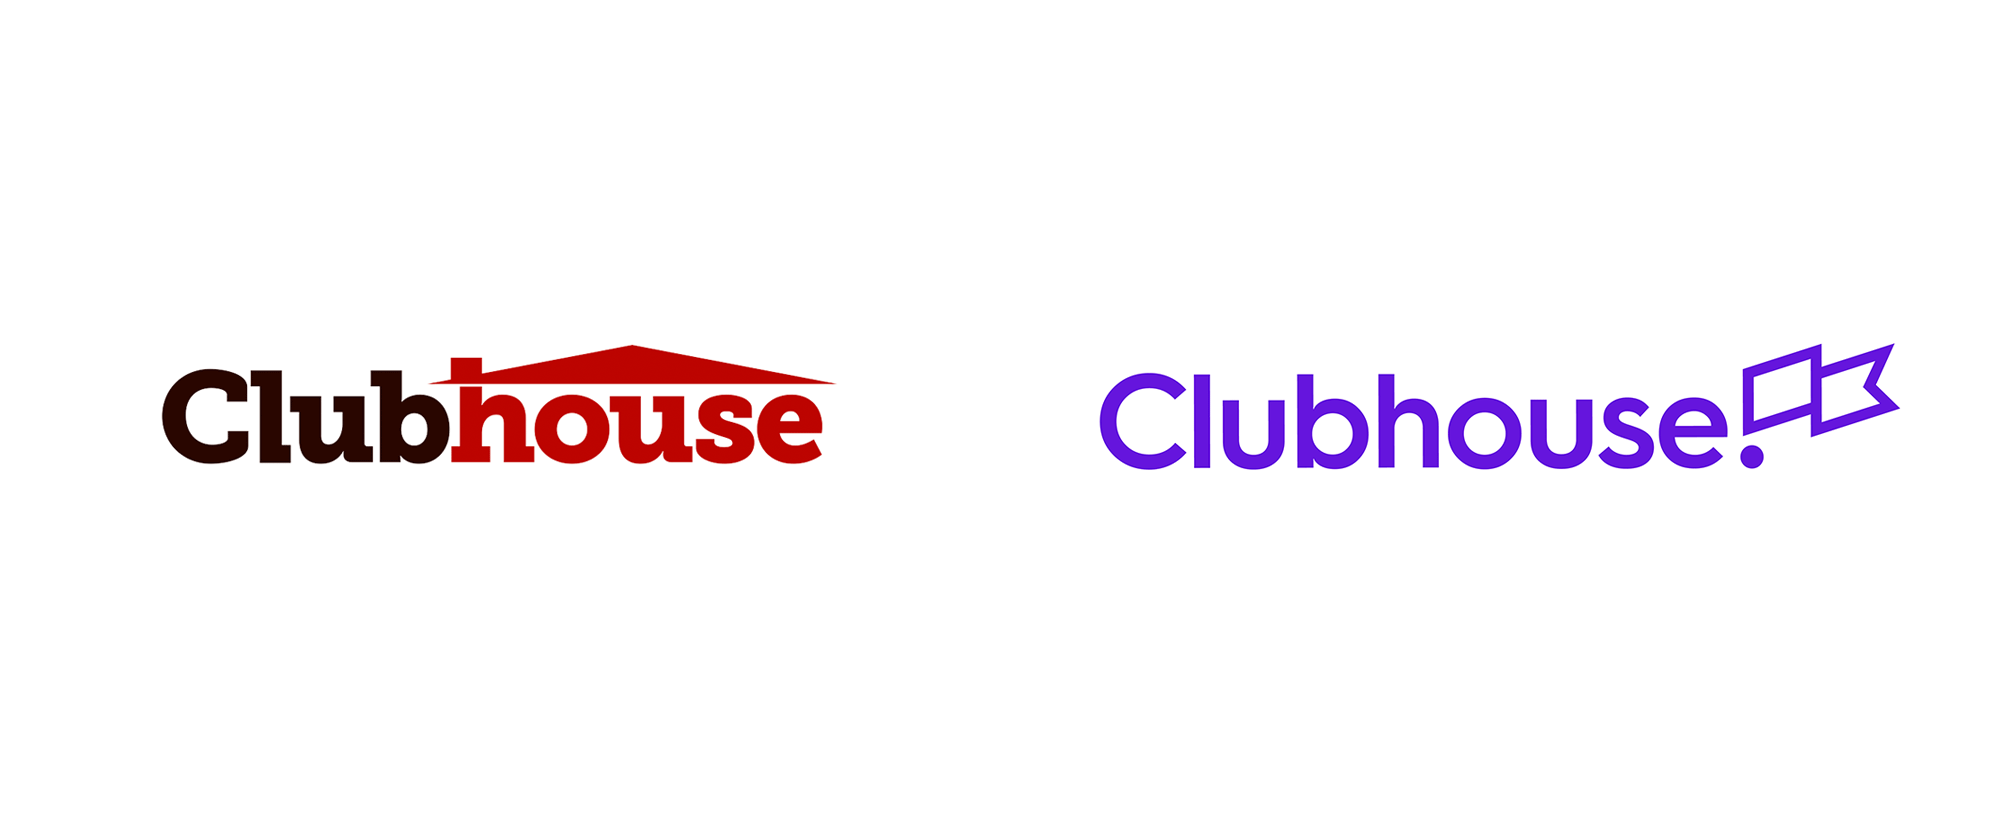 New Logo and Identity for Clubhouse by Ueno